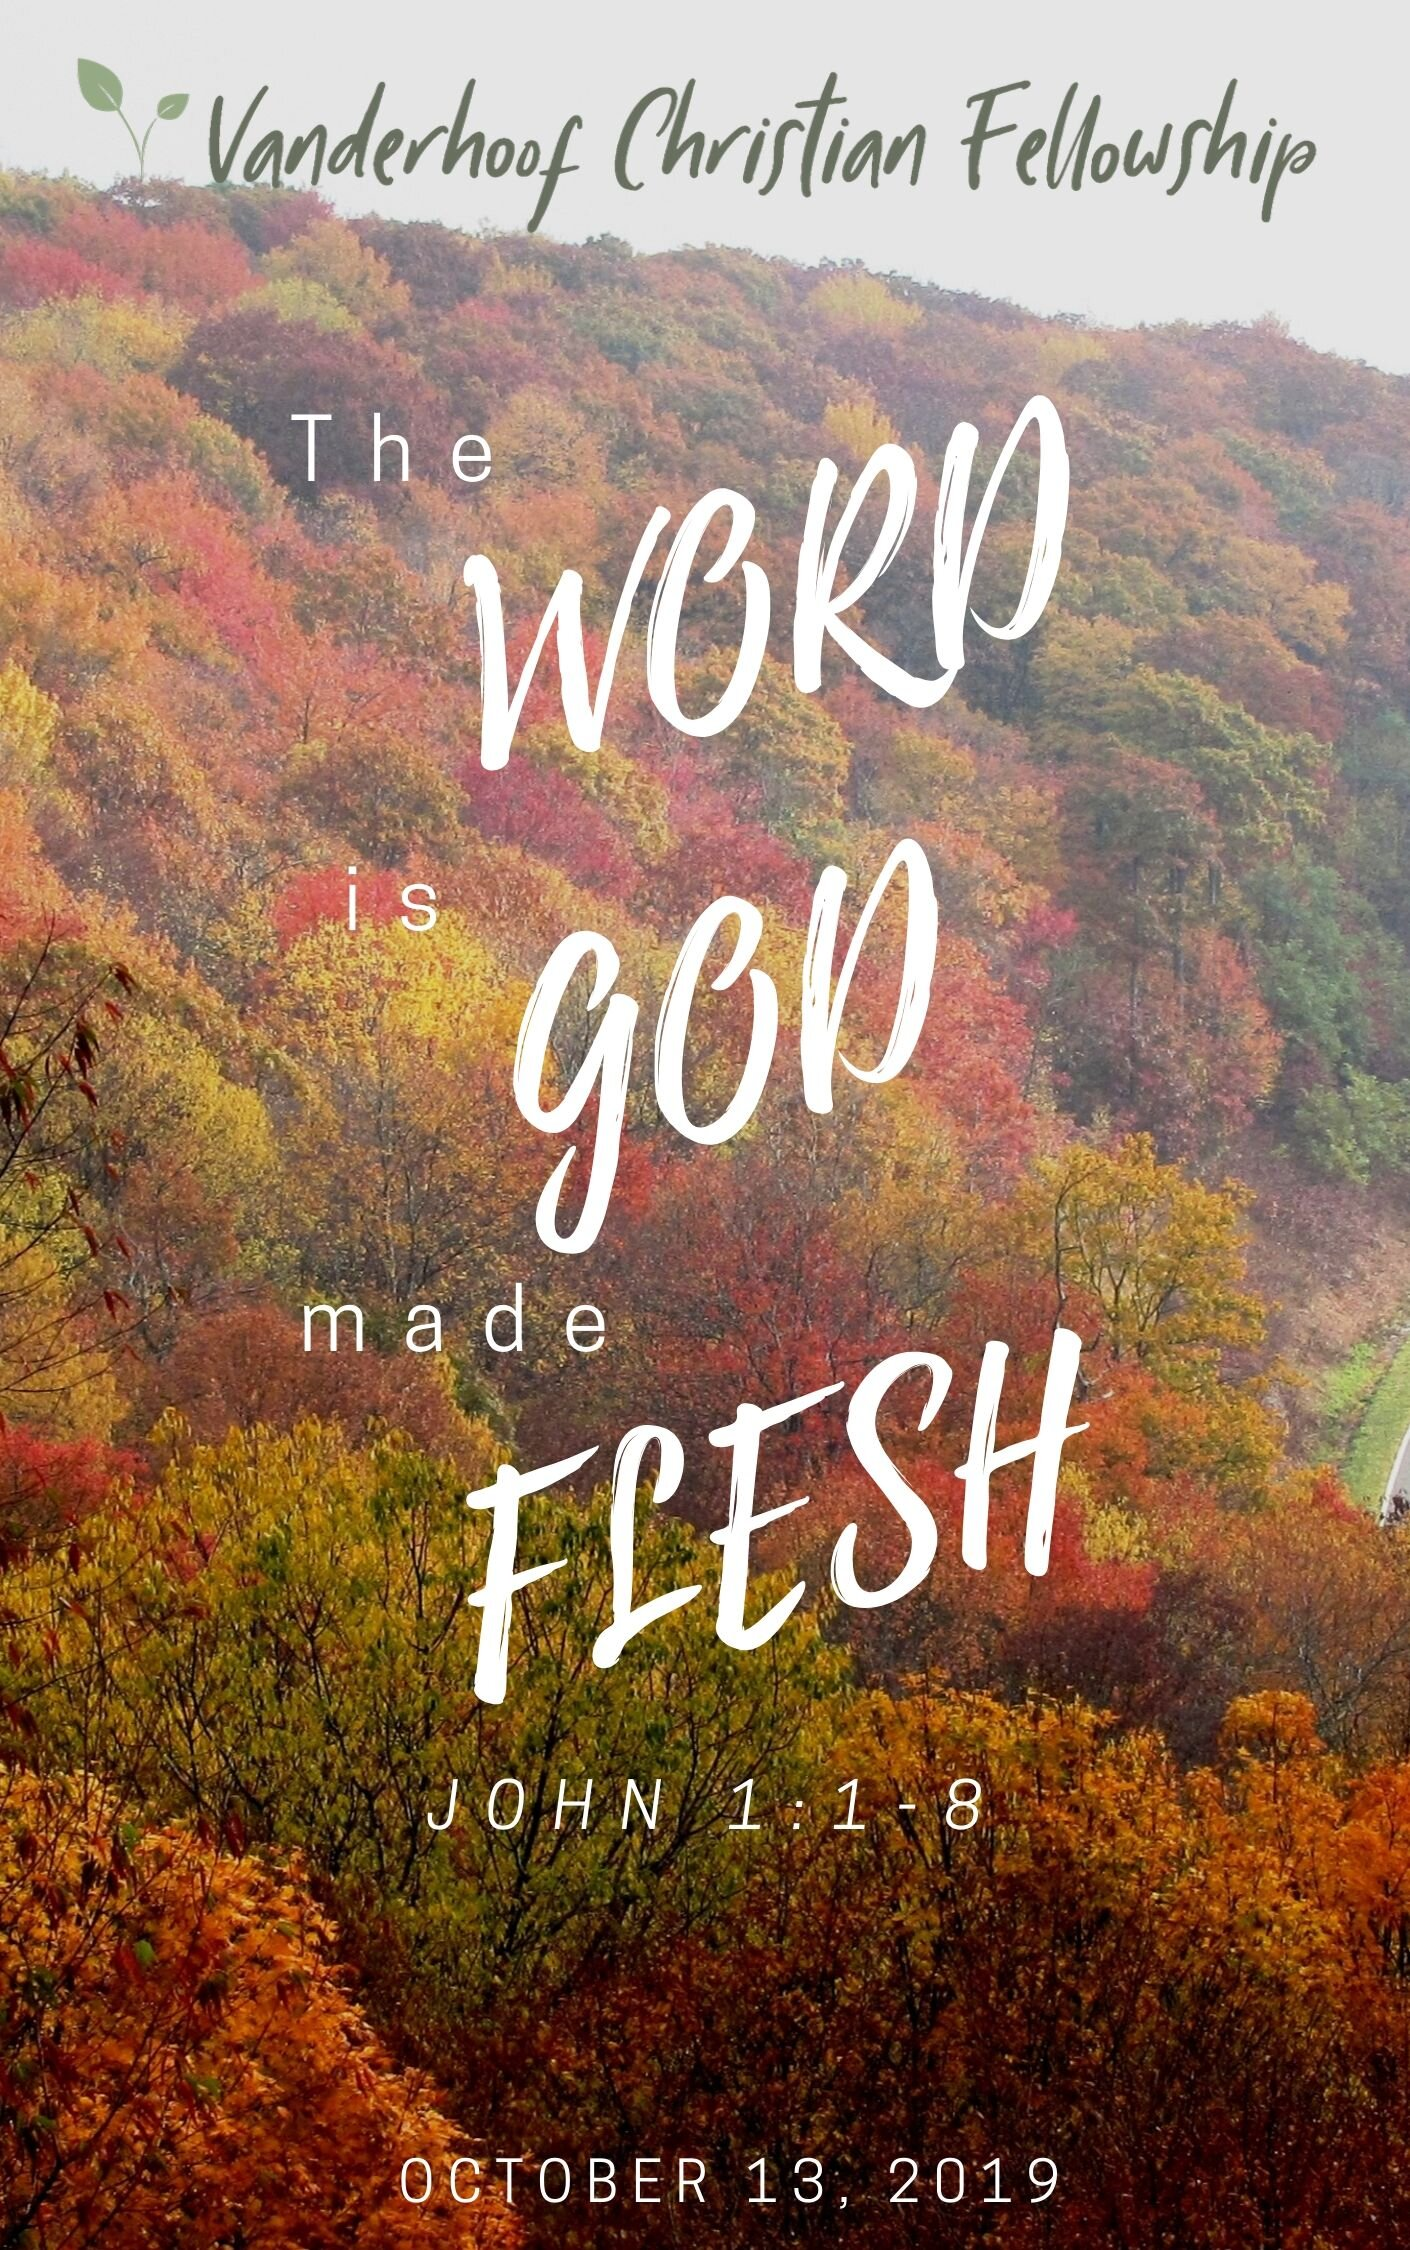 The Word is God made Flesh